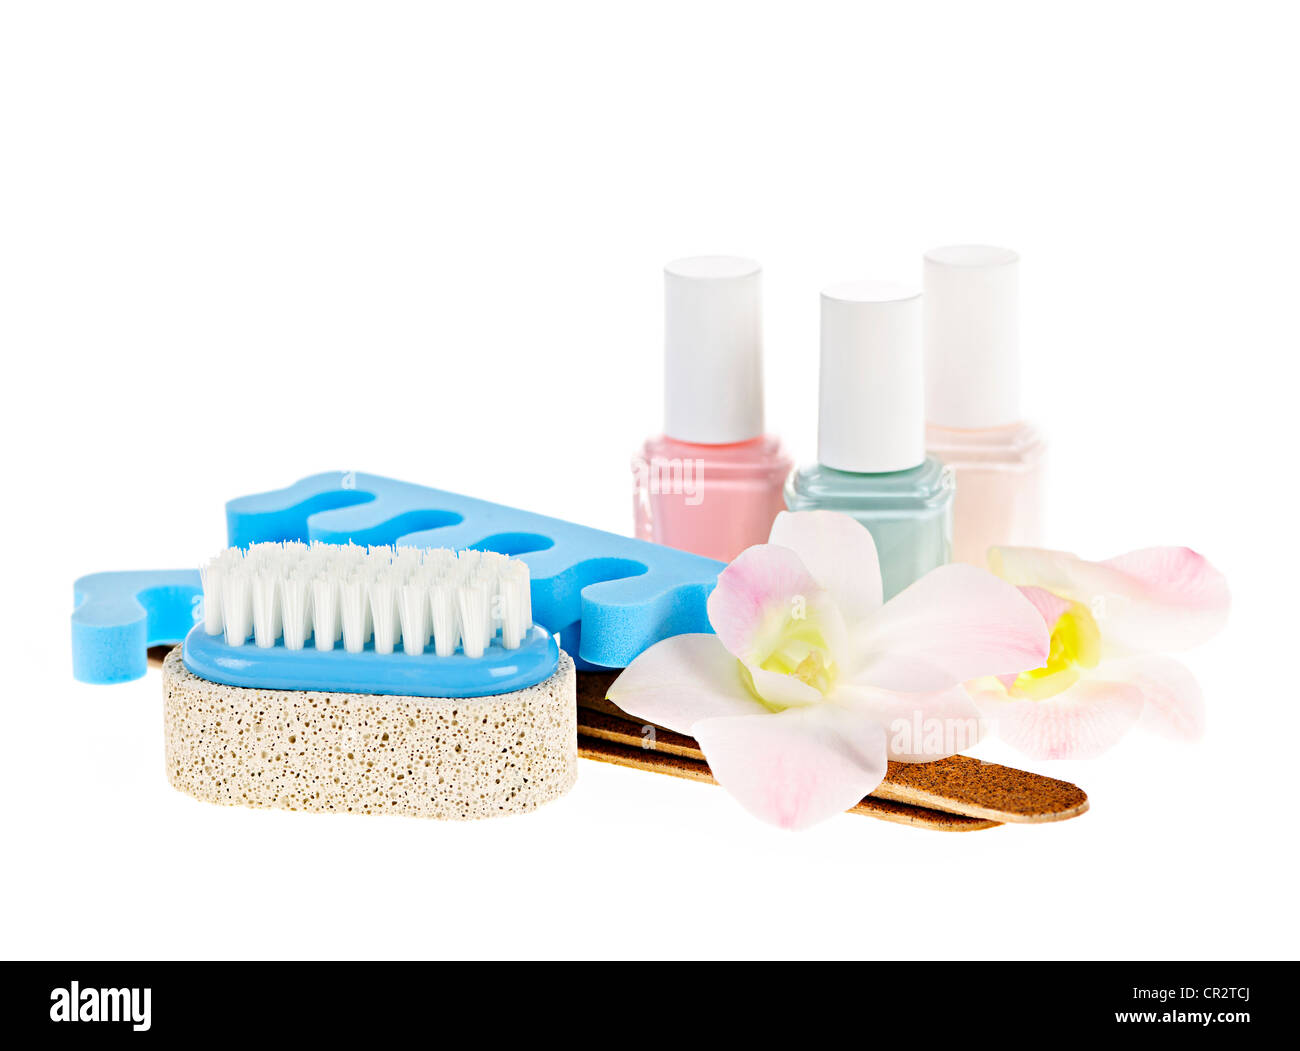 Pedicure accessories with nail polish on white background - Stock Image